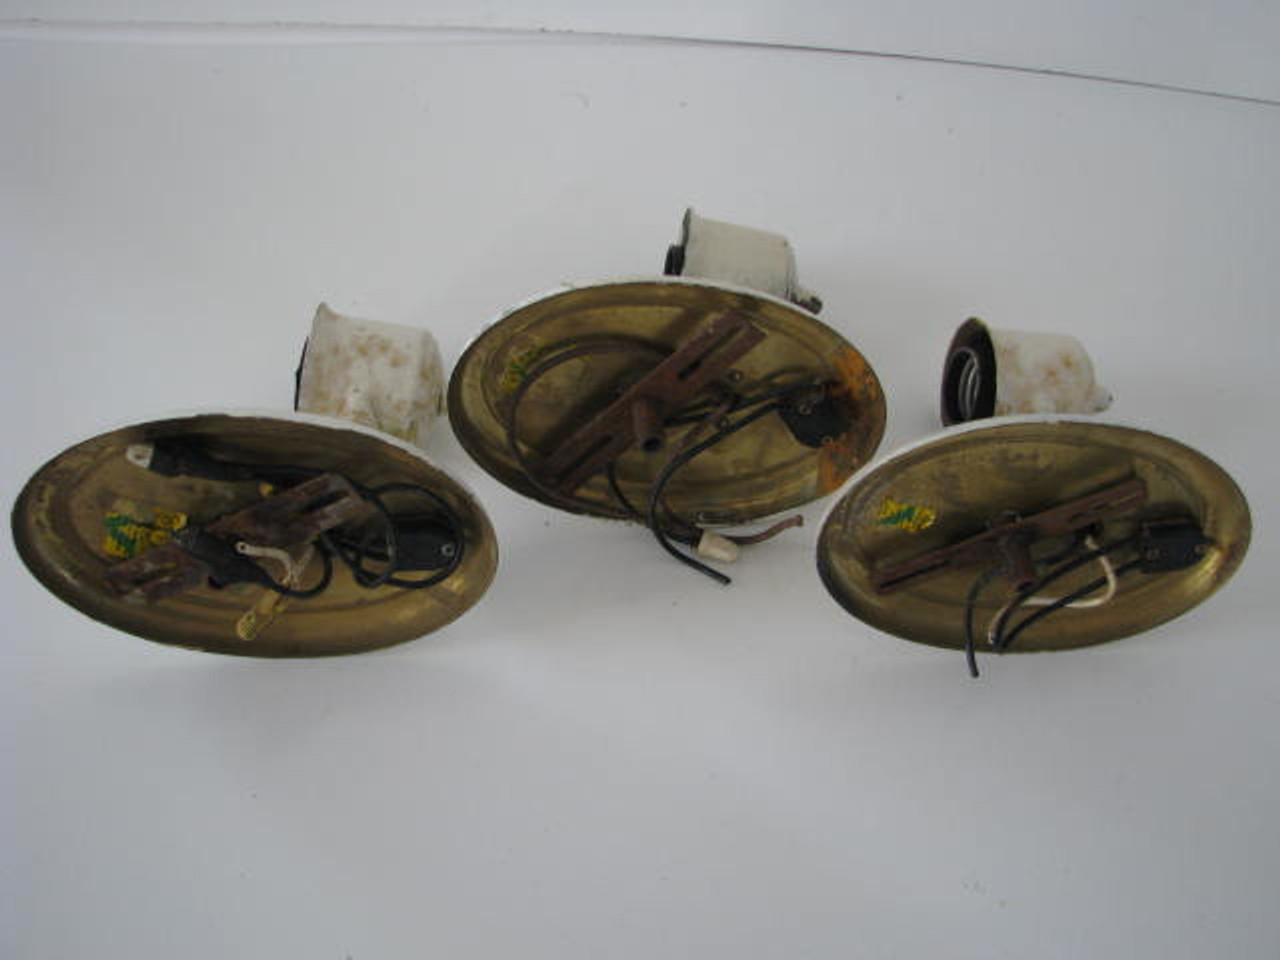 Oval Wall Sconces (Lot of 3) (LT020) ALL 3 ITEMS SHOWN (REAR VIEW)